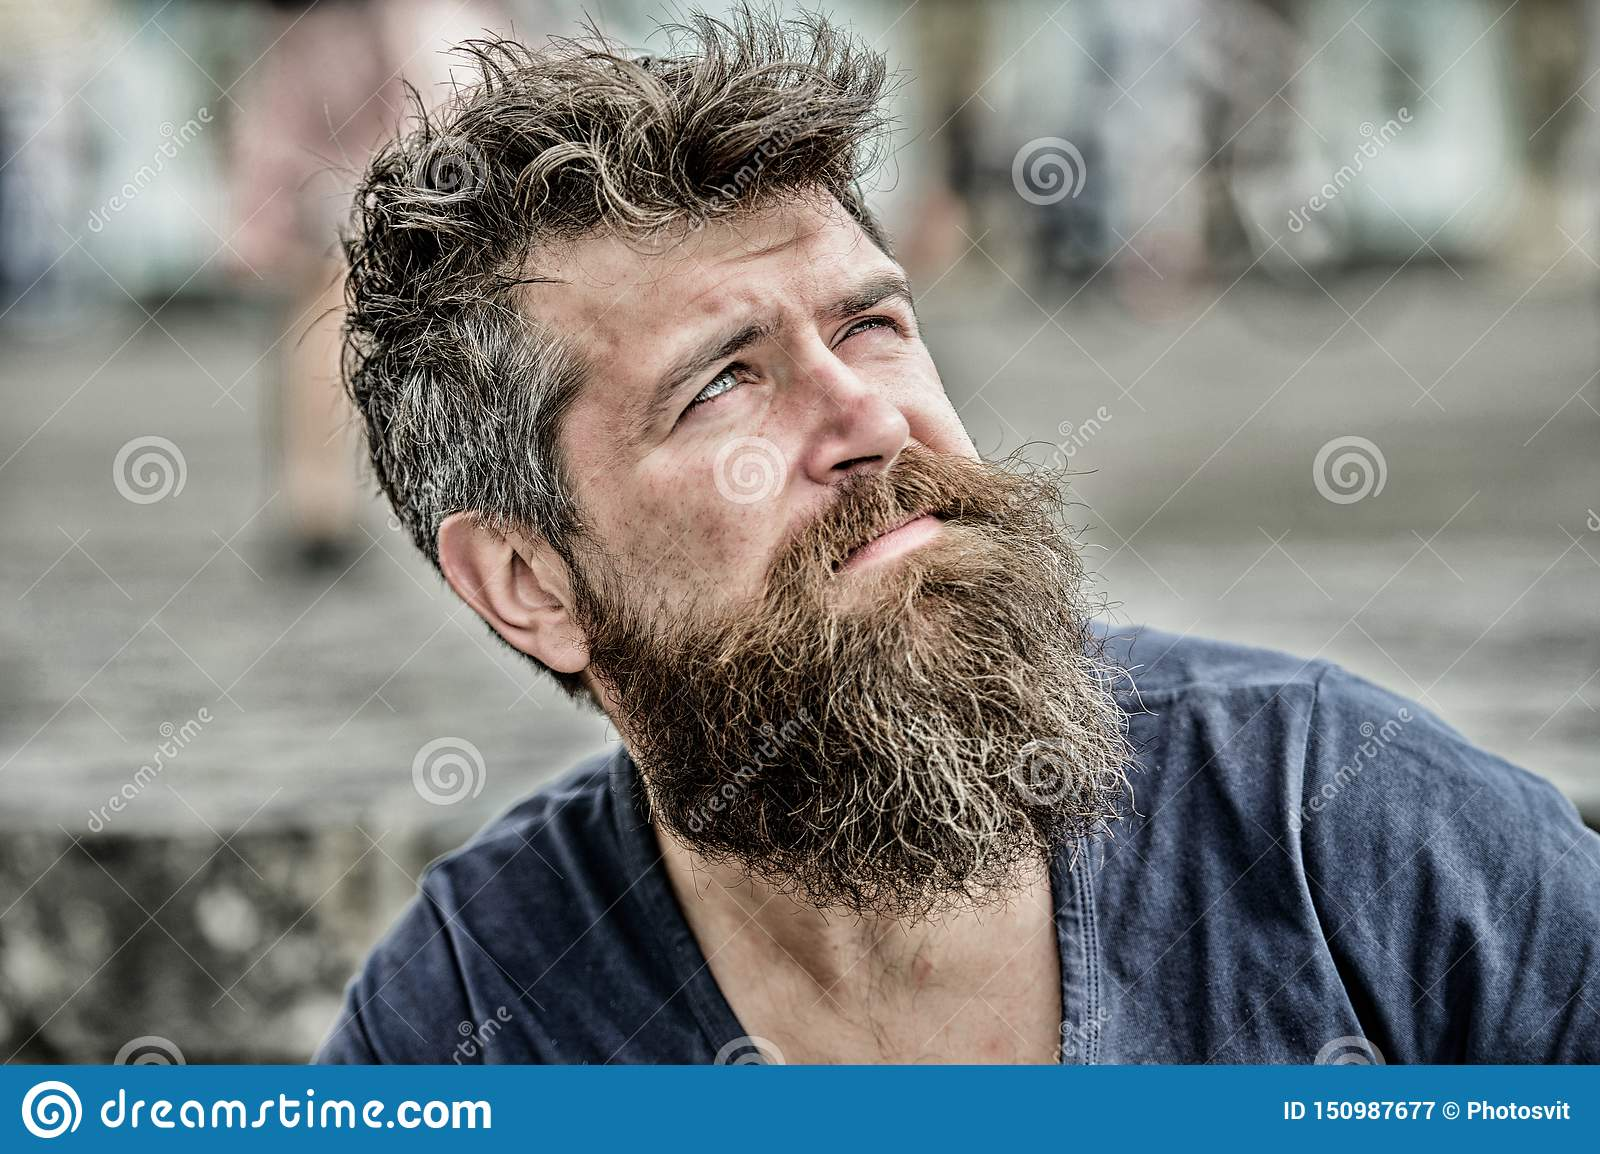 Thinking and hesitating. Bearded man concentrated face. Thoughtful mood concept. Making important choices. Man with